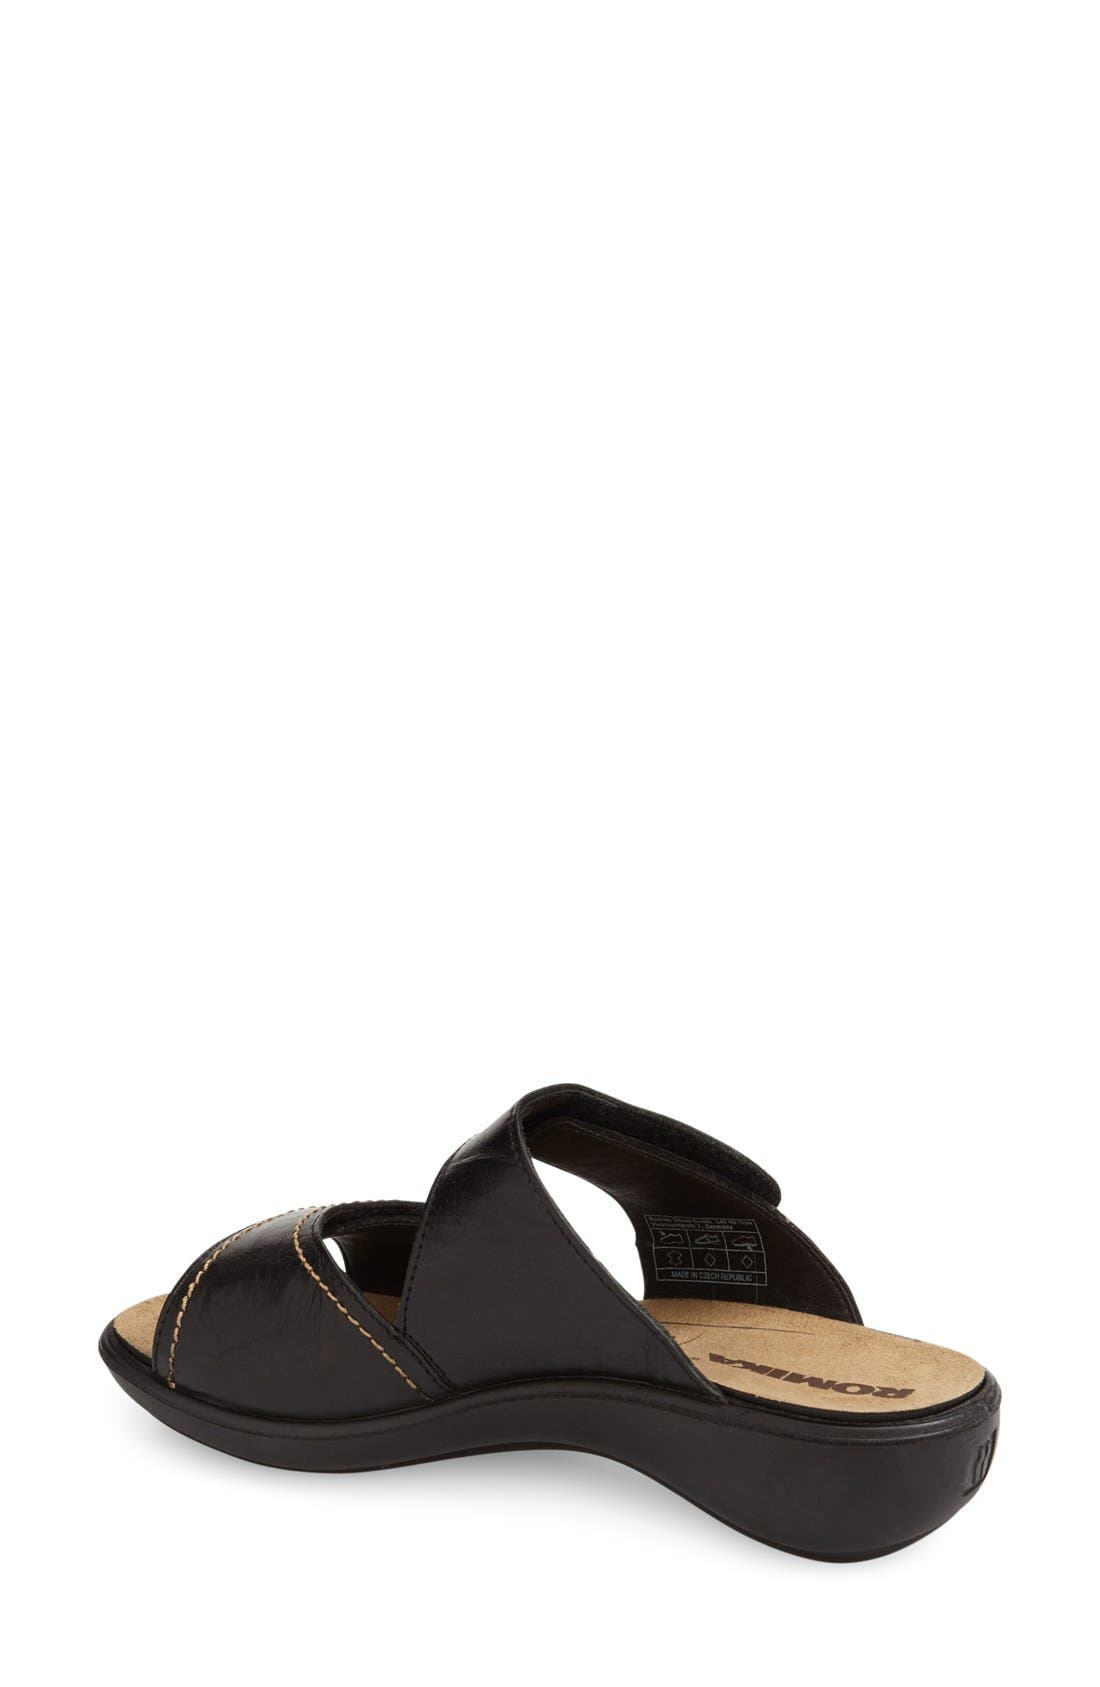 'Ibiza 64' Slide Sandal,                             Alternate thumbnail 2, color,                             004